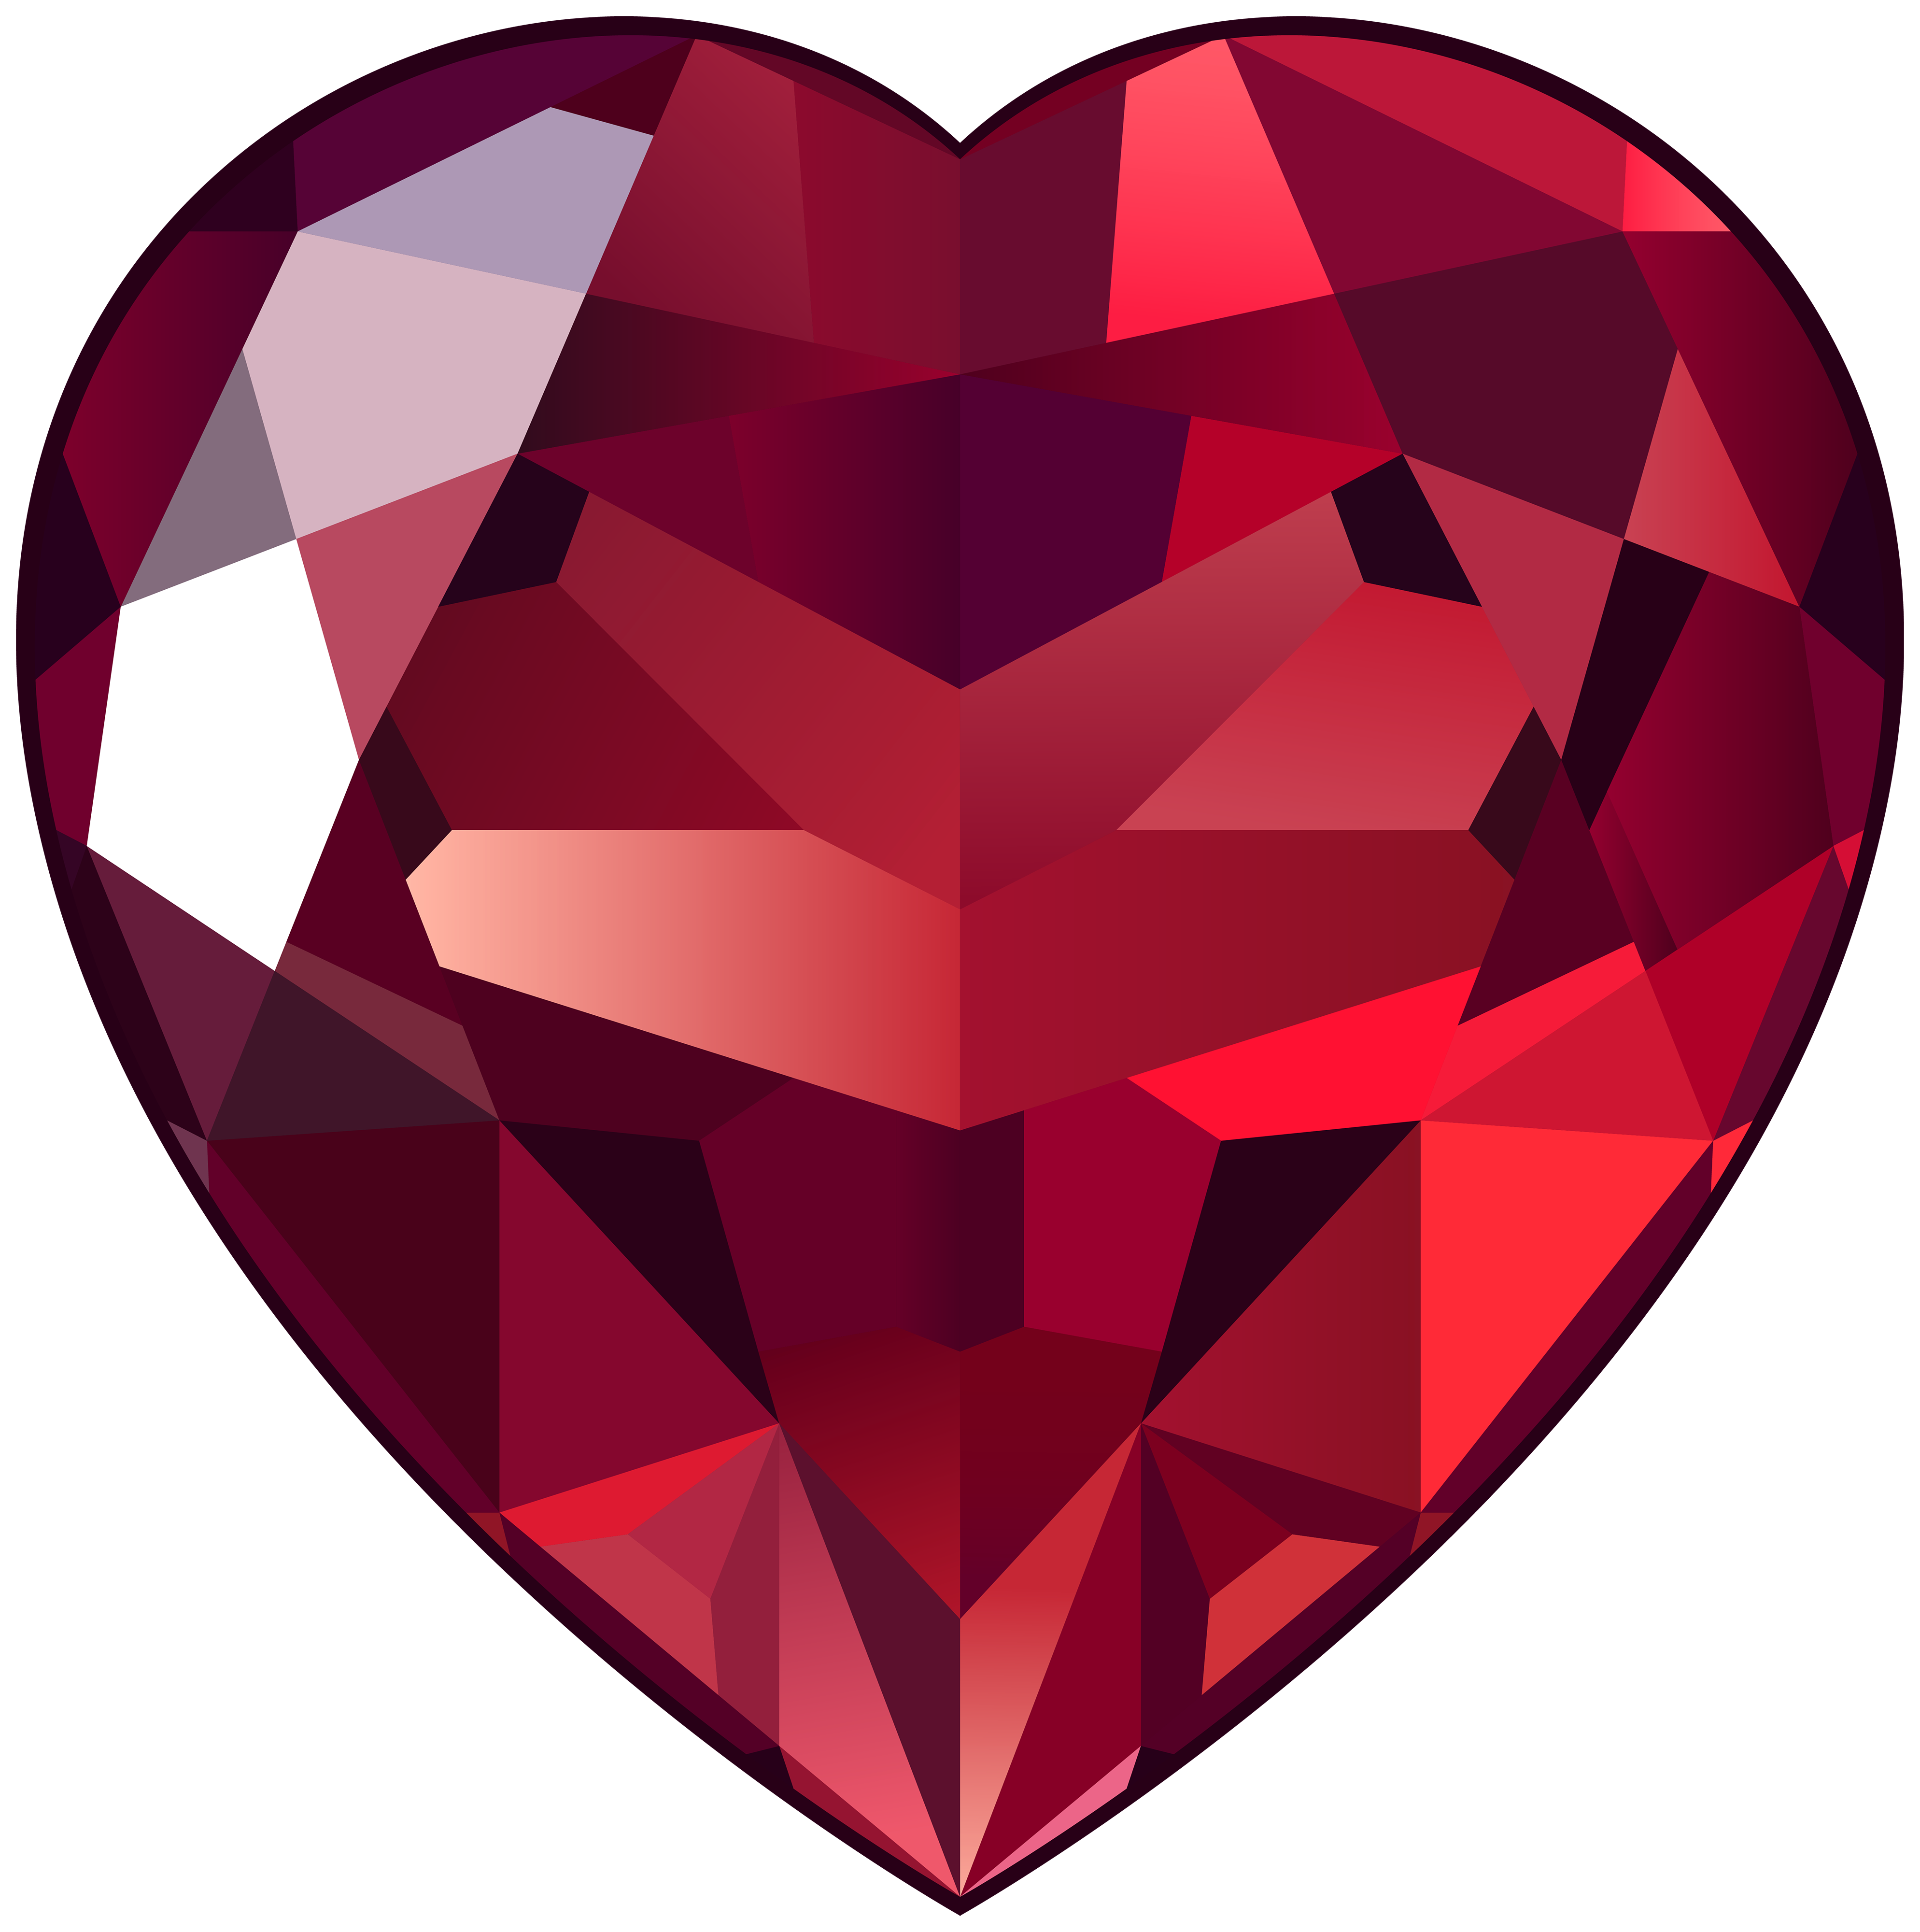 Heart diamond clipart jpg black and white download Ruby Heart PNG Clipart - Best WEB Clipart jpg black and white download